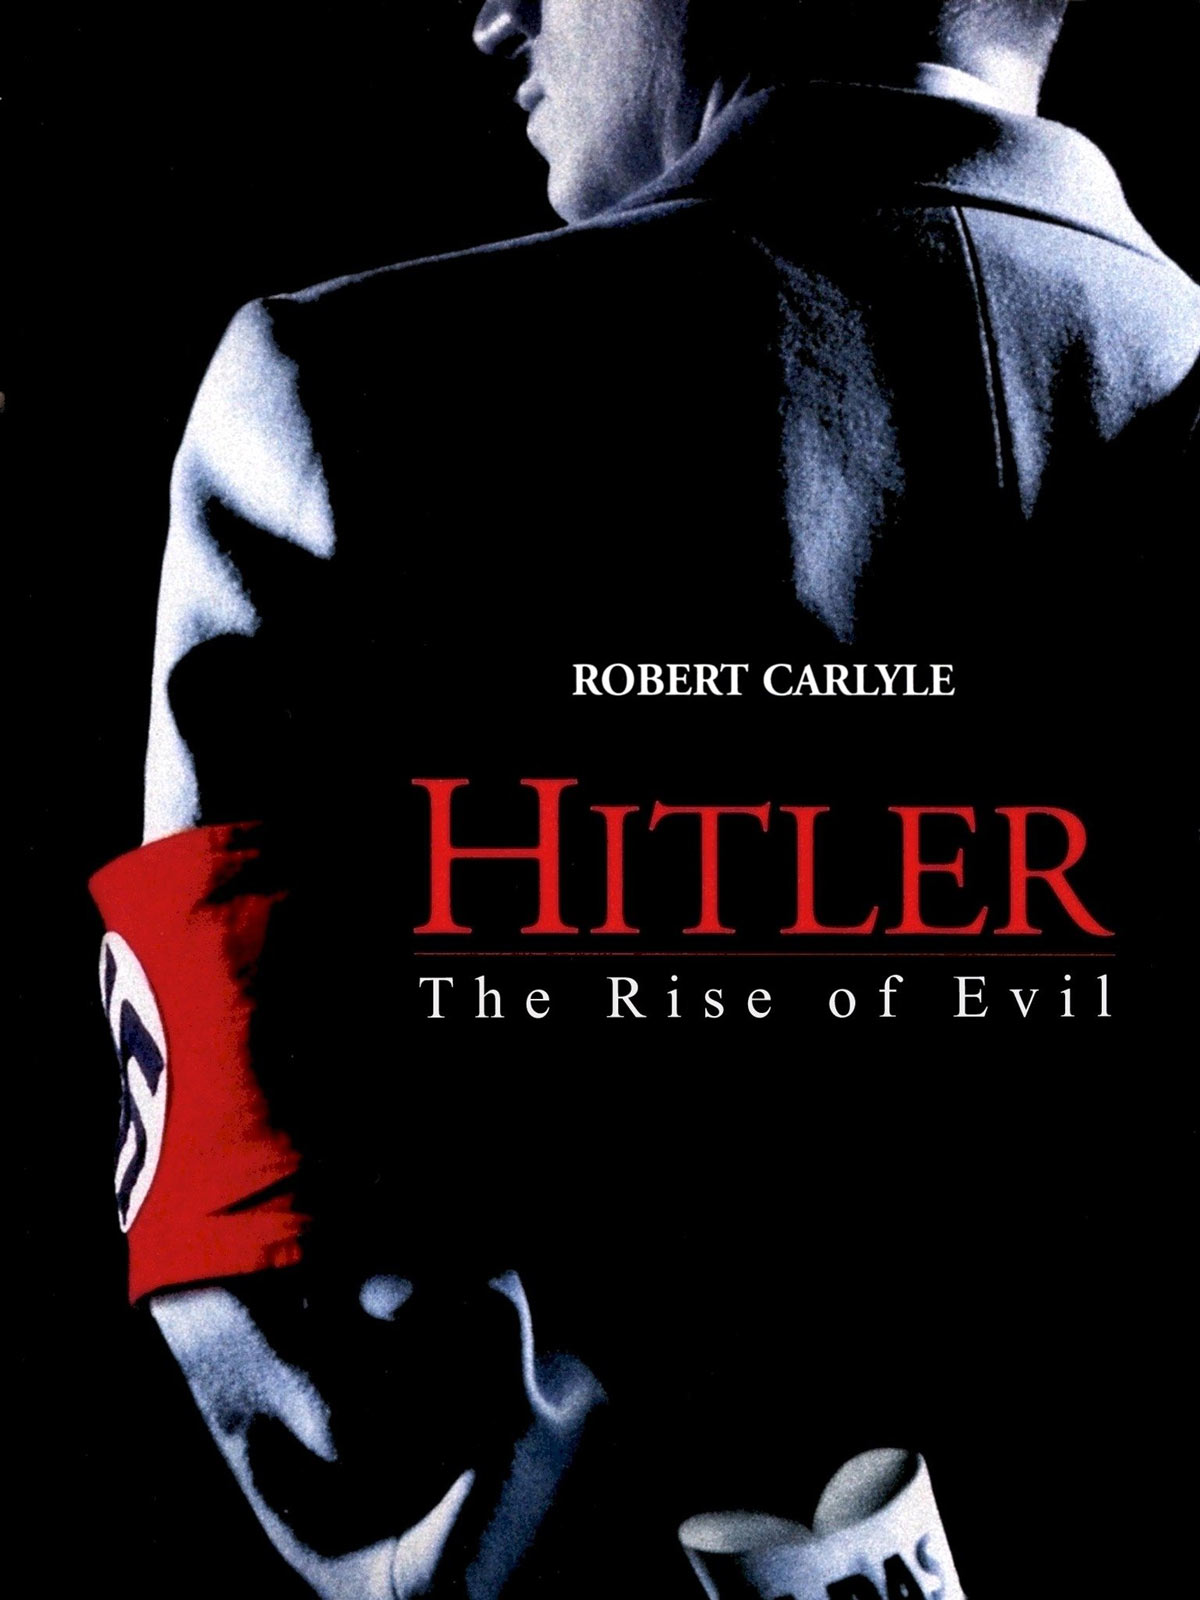 hitler: the rise of evil (2003) - Yahoo Search Results